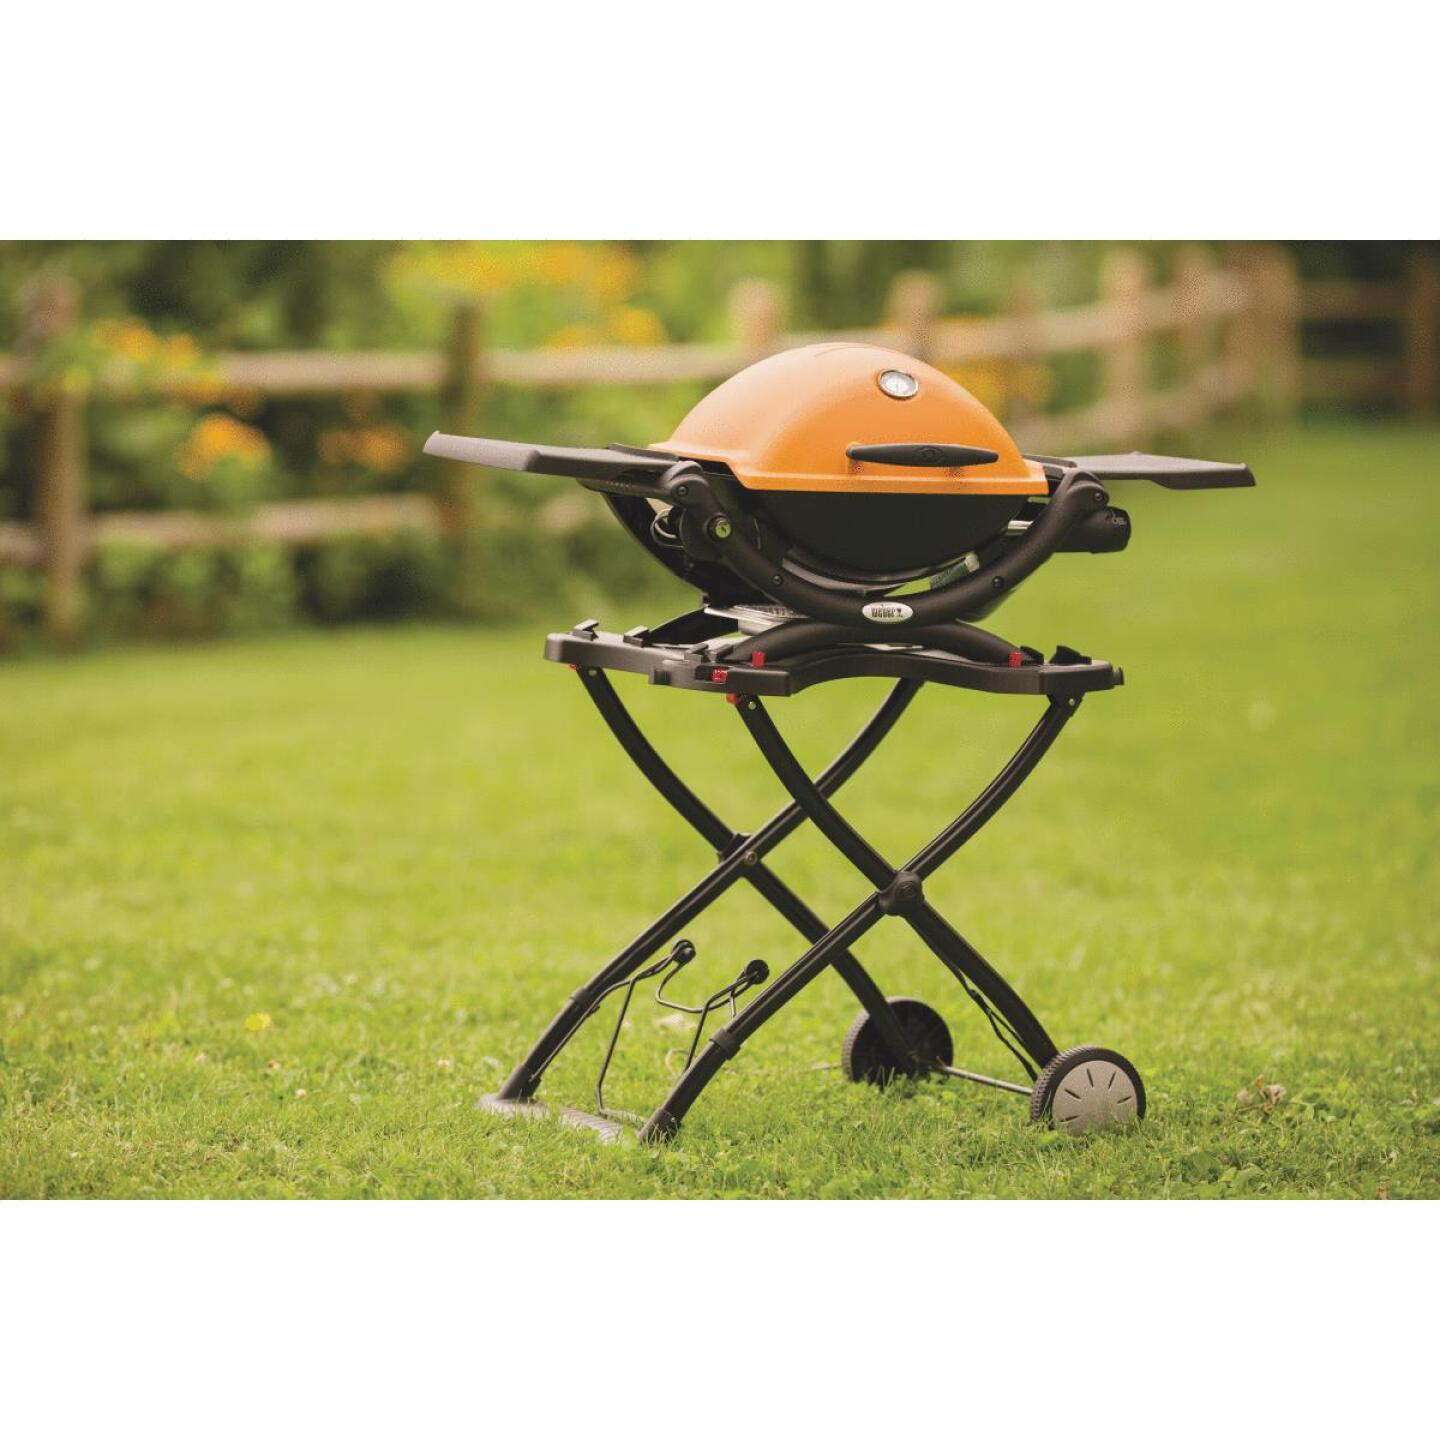 Weber Q 1200 1-Burner Orange 8,500-BTU LP Gas Grill Image 4